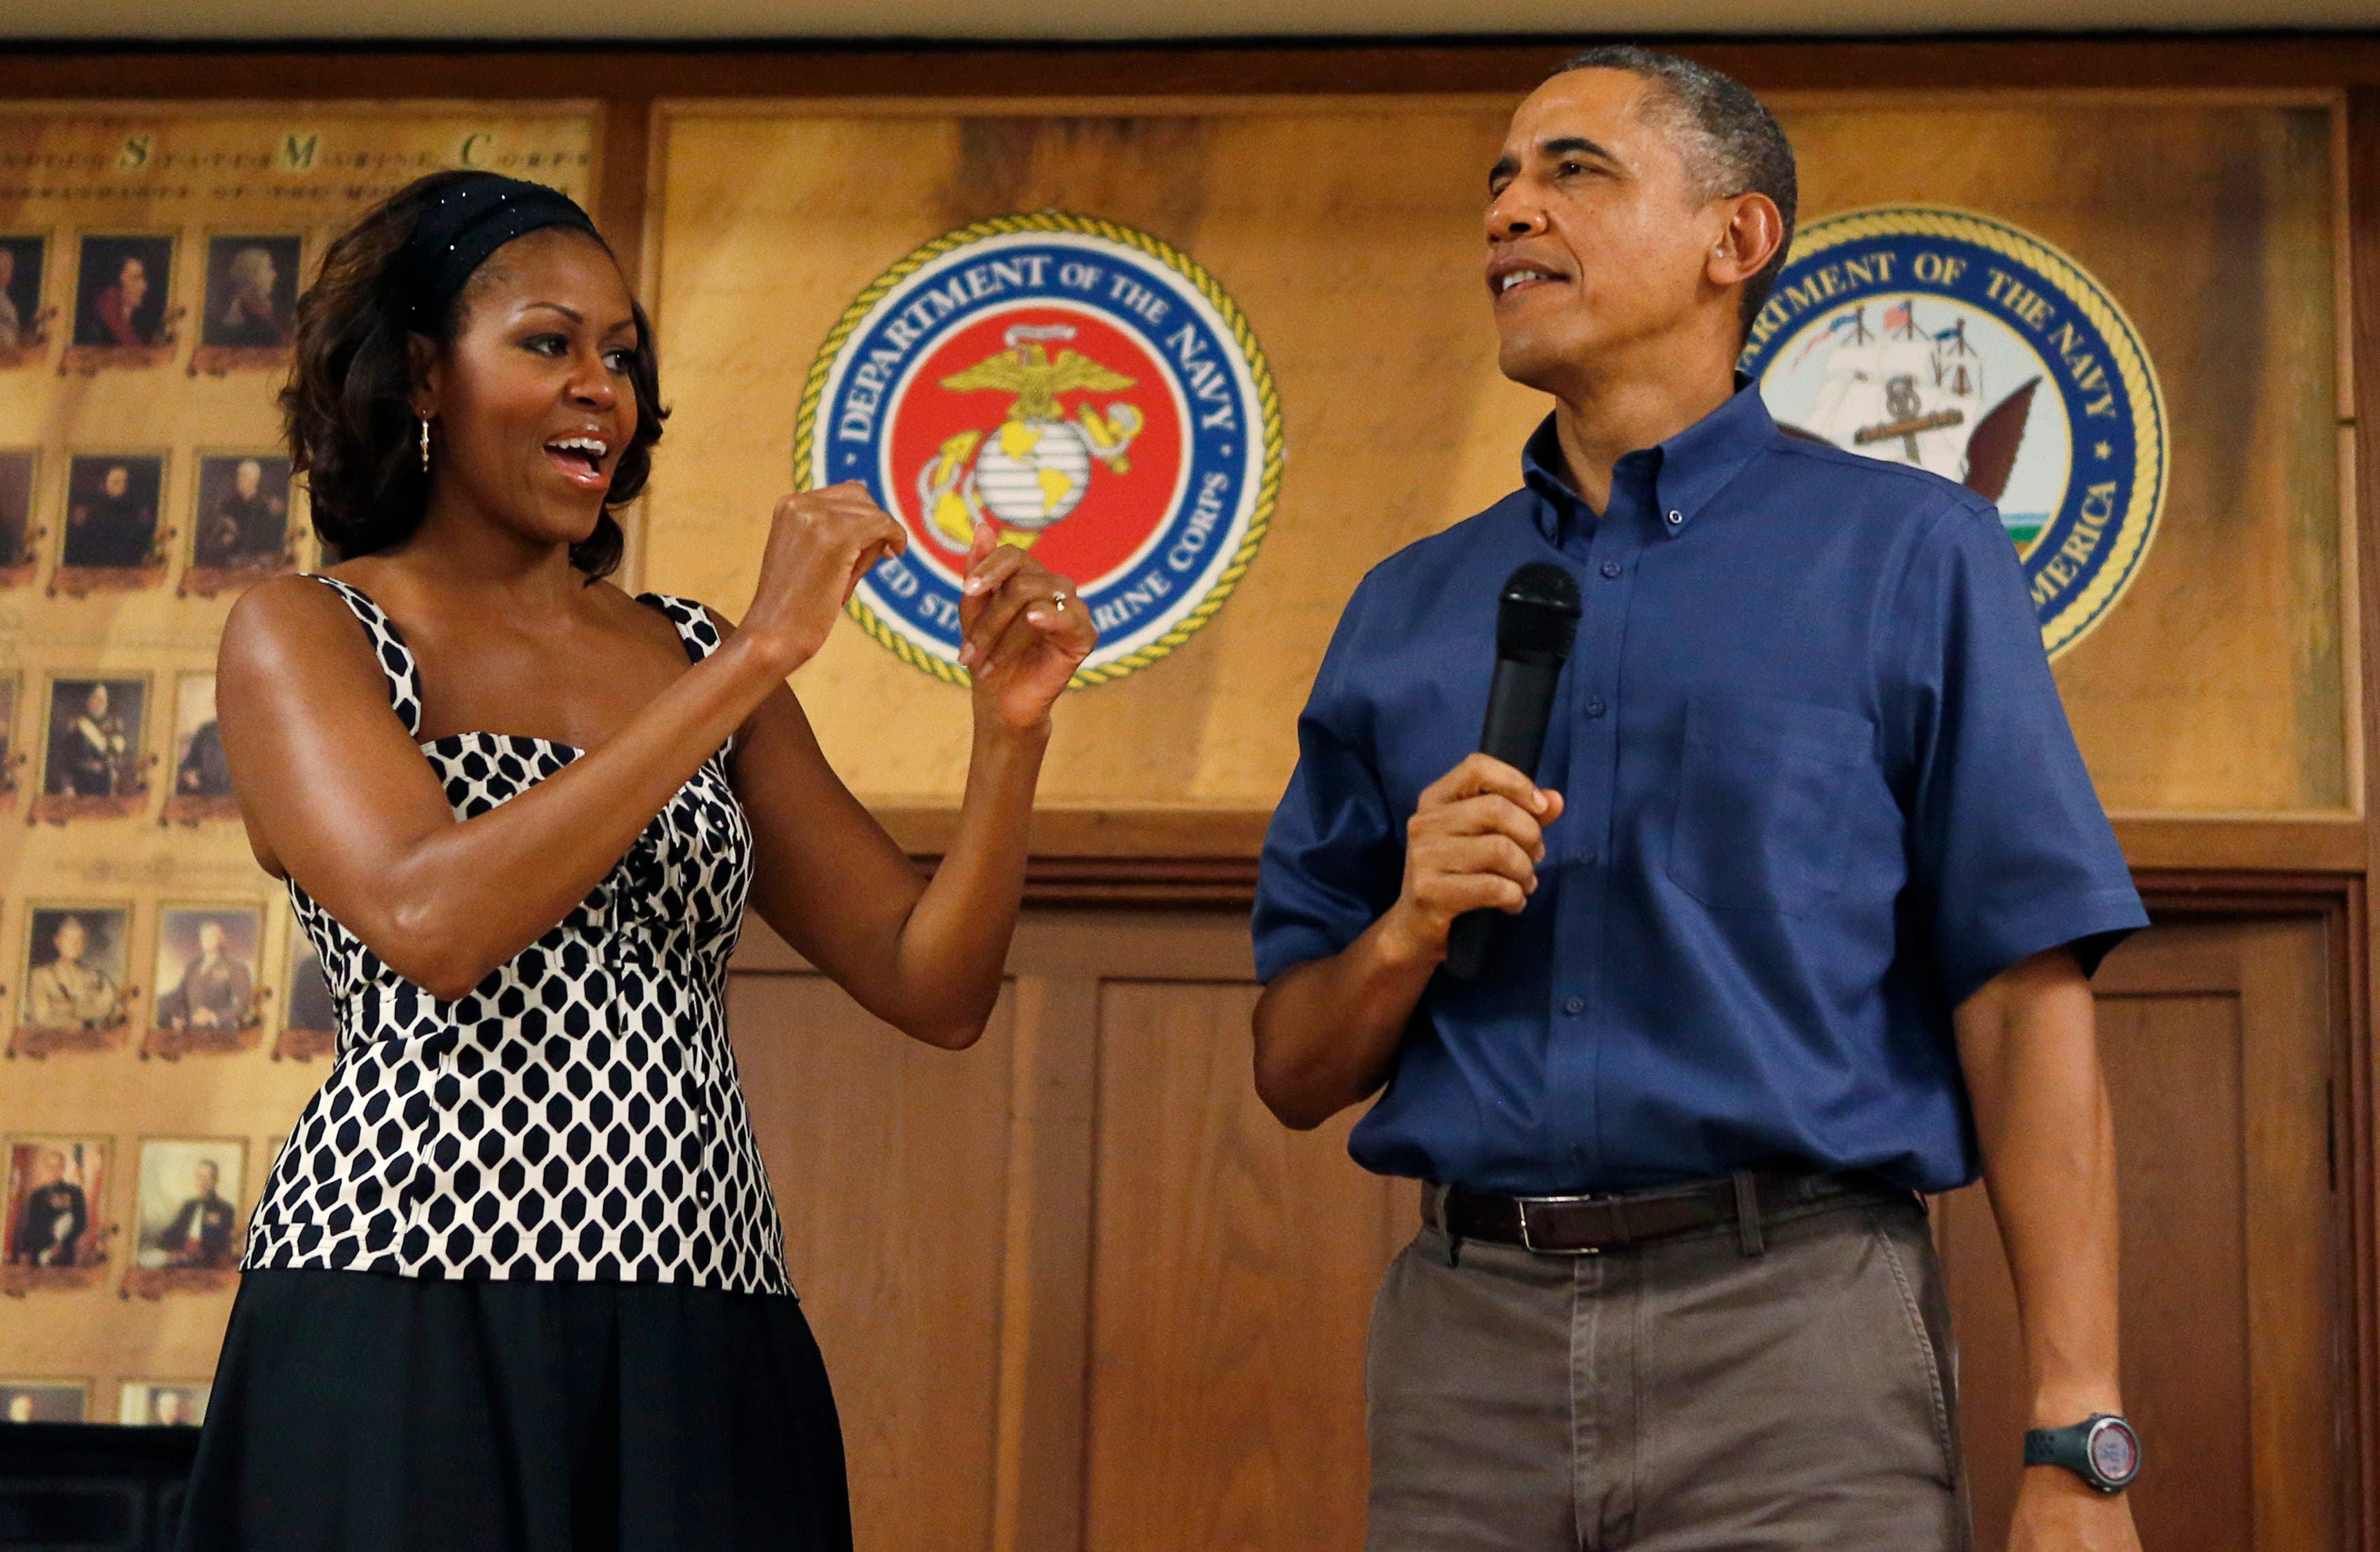 U.S. President Barack Obama and first lady Michelle Obama address military personnel during a Christmas day visit to Marine Corps Base Hawaii in Kaneohe, Hawaii December 25, 2013. reuters